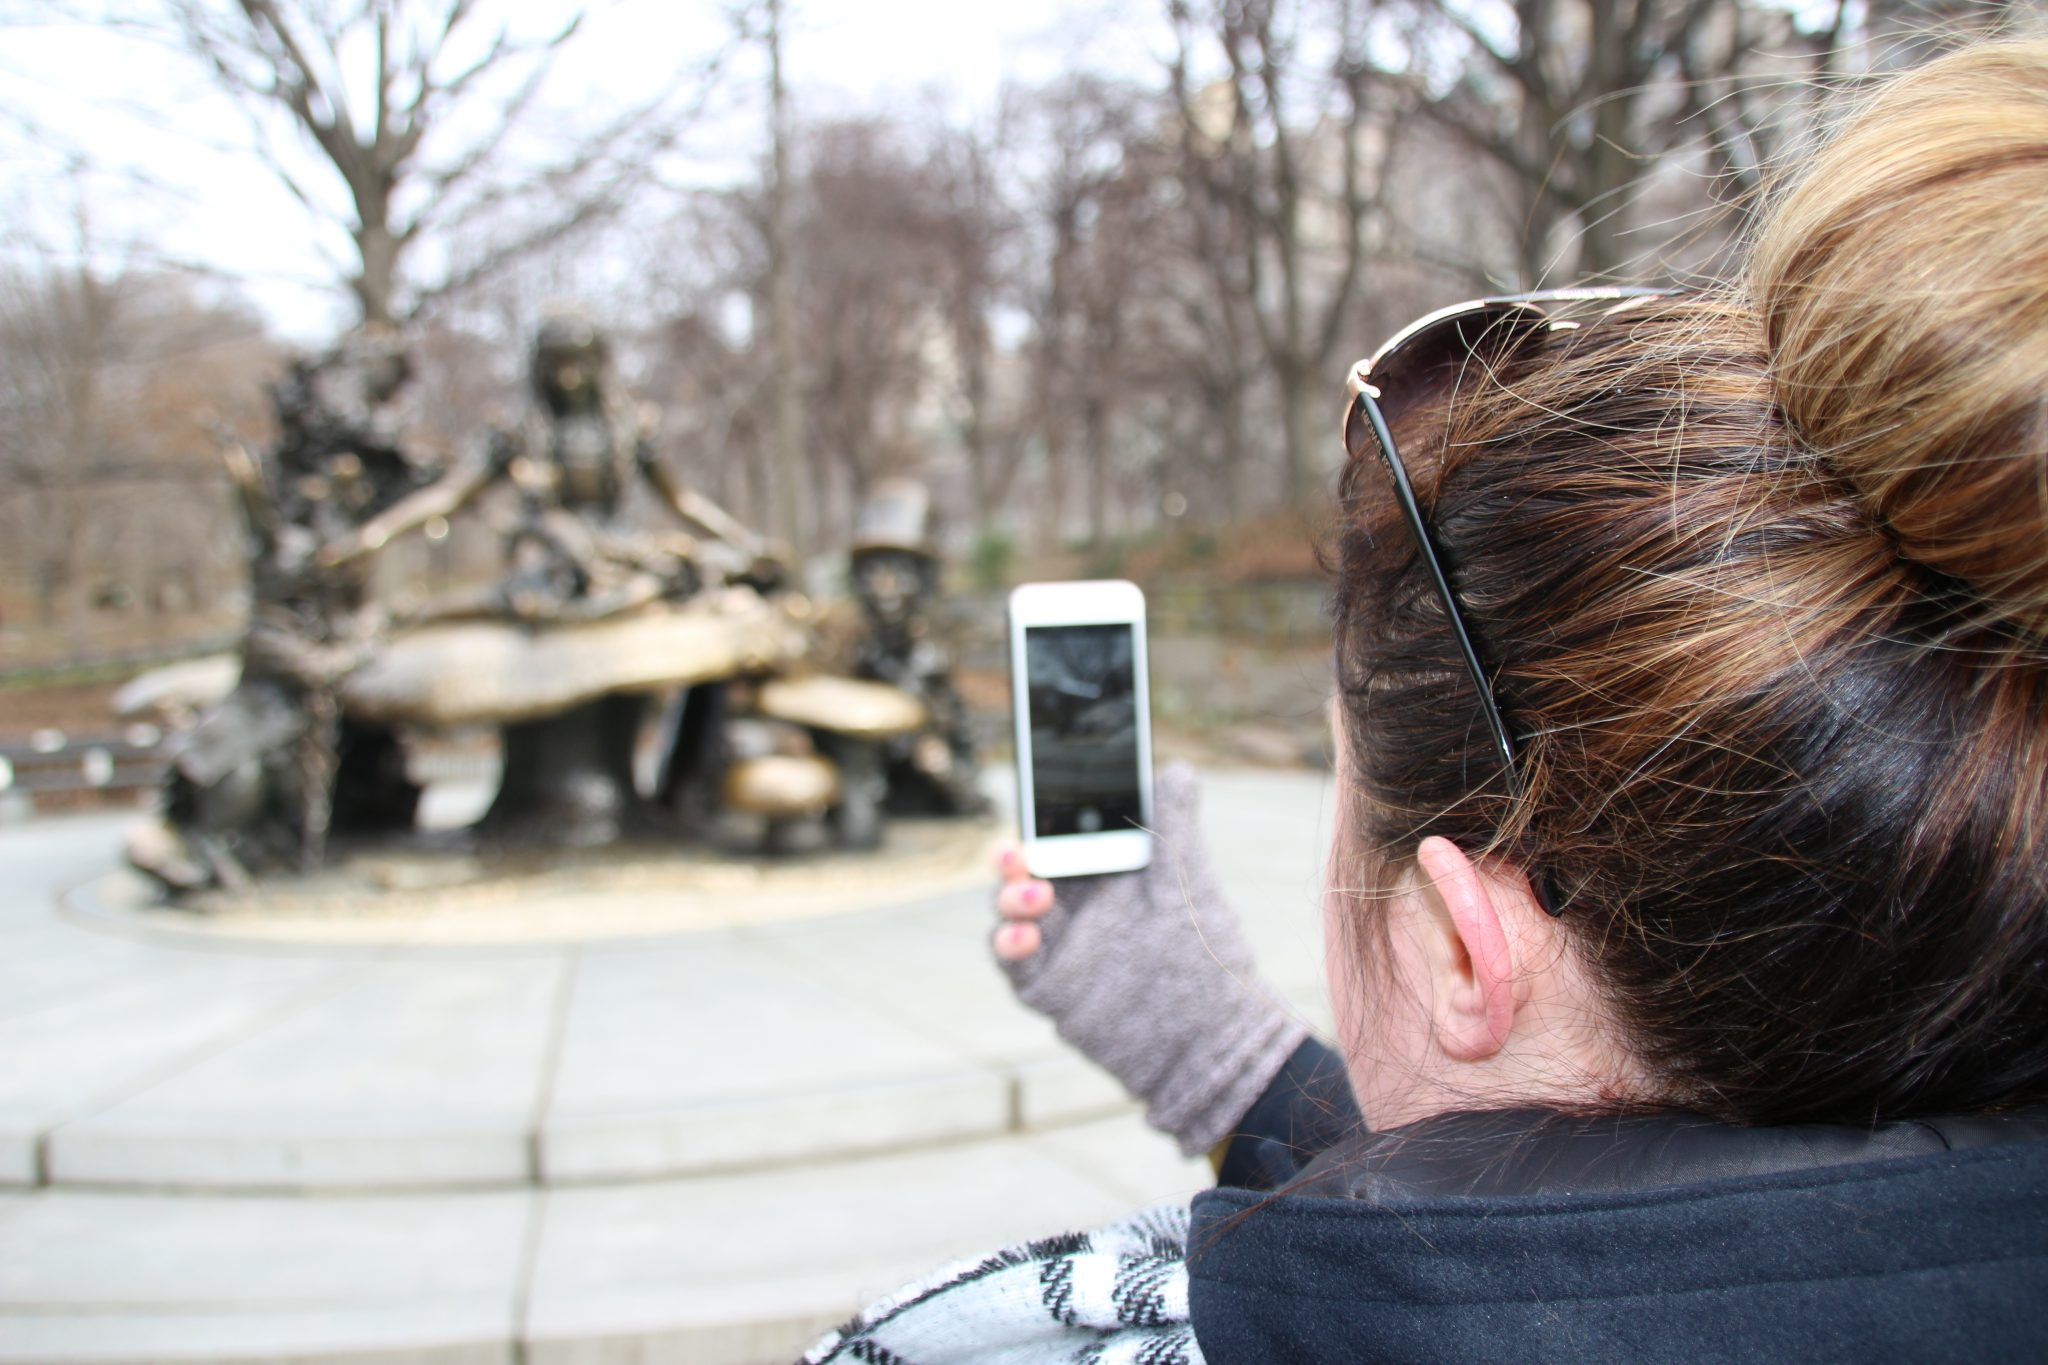 Phinexi iPhone Case Review in Central Park